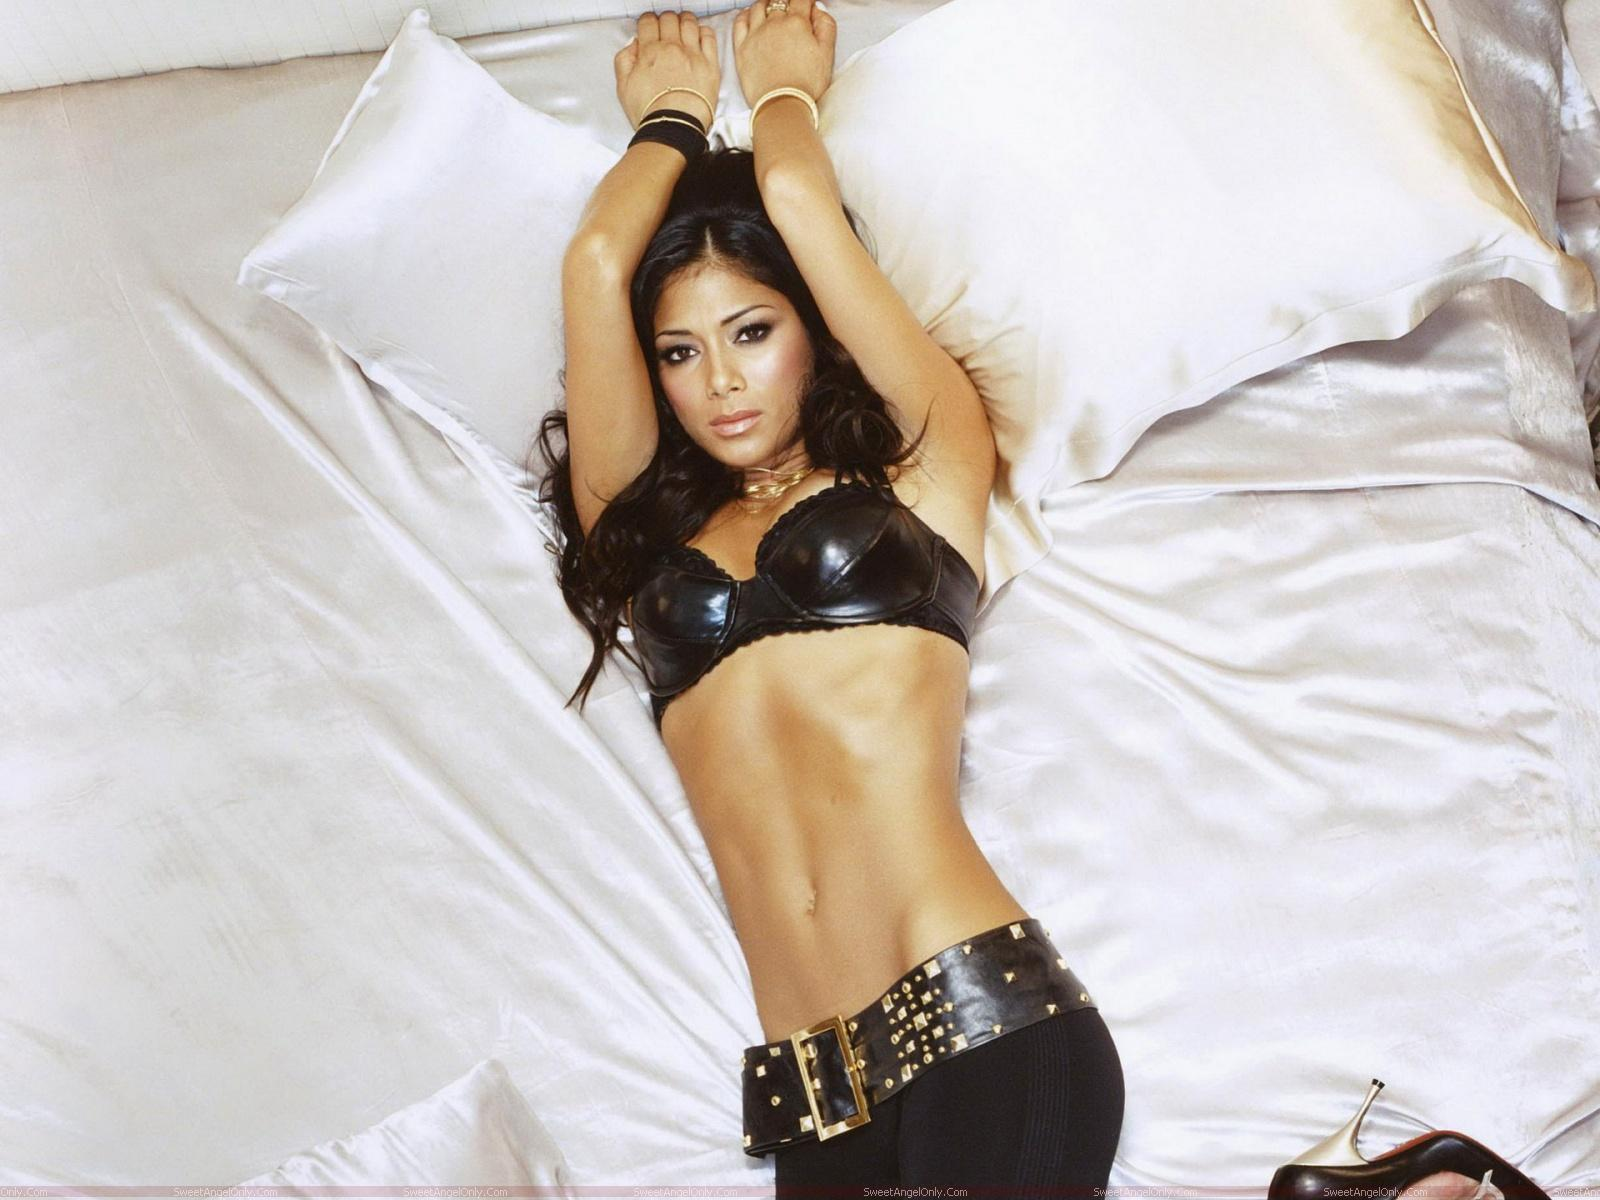 High Resolution Wallpaper: Nicole Scherzinger Wallpapers